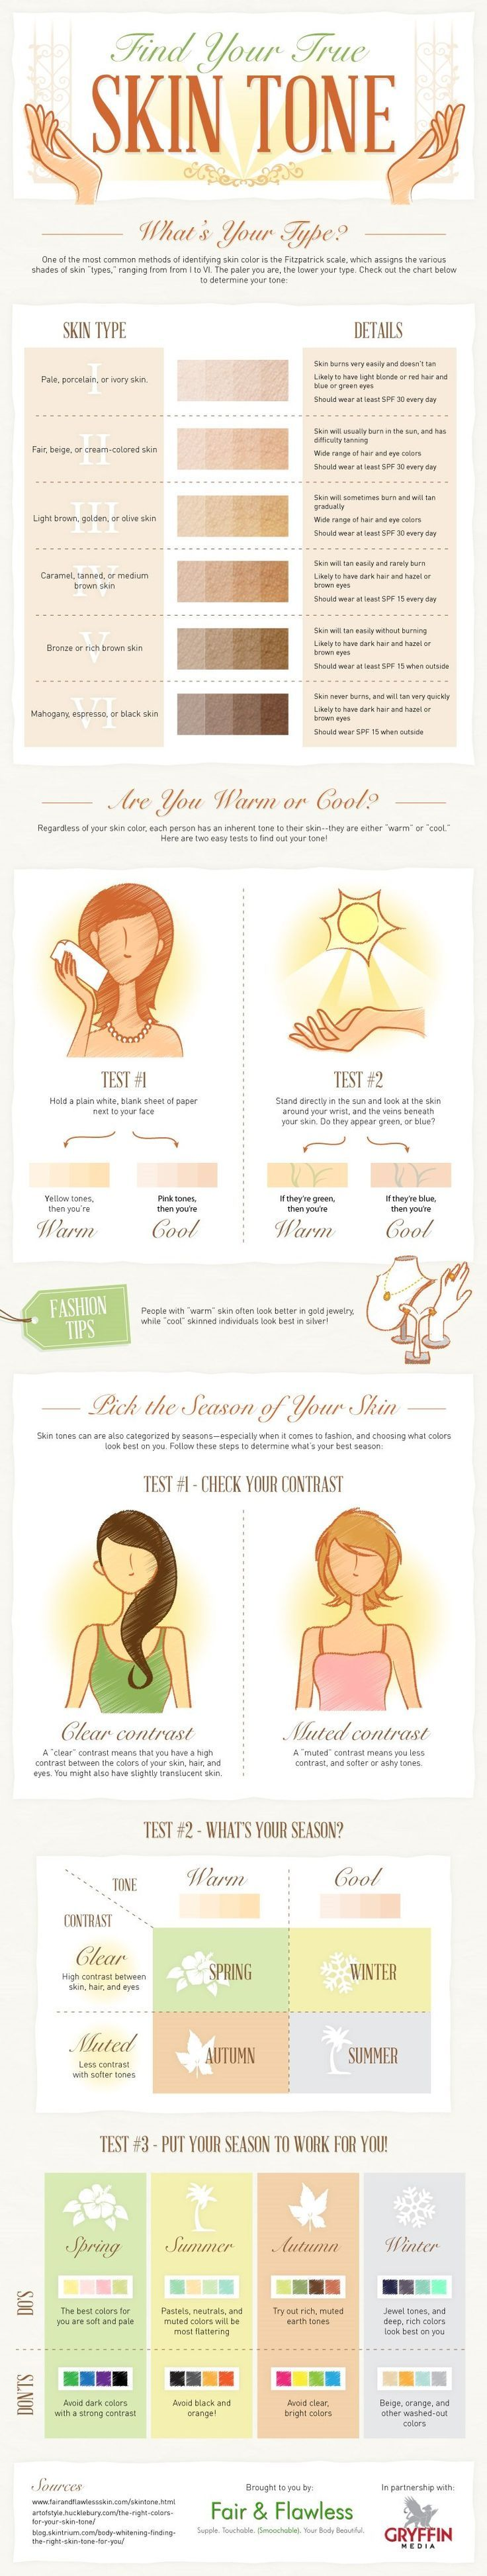 Skin Tone - Find out what your skin tone is.  Great guide for choosing makeup!